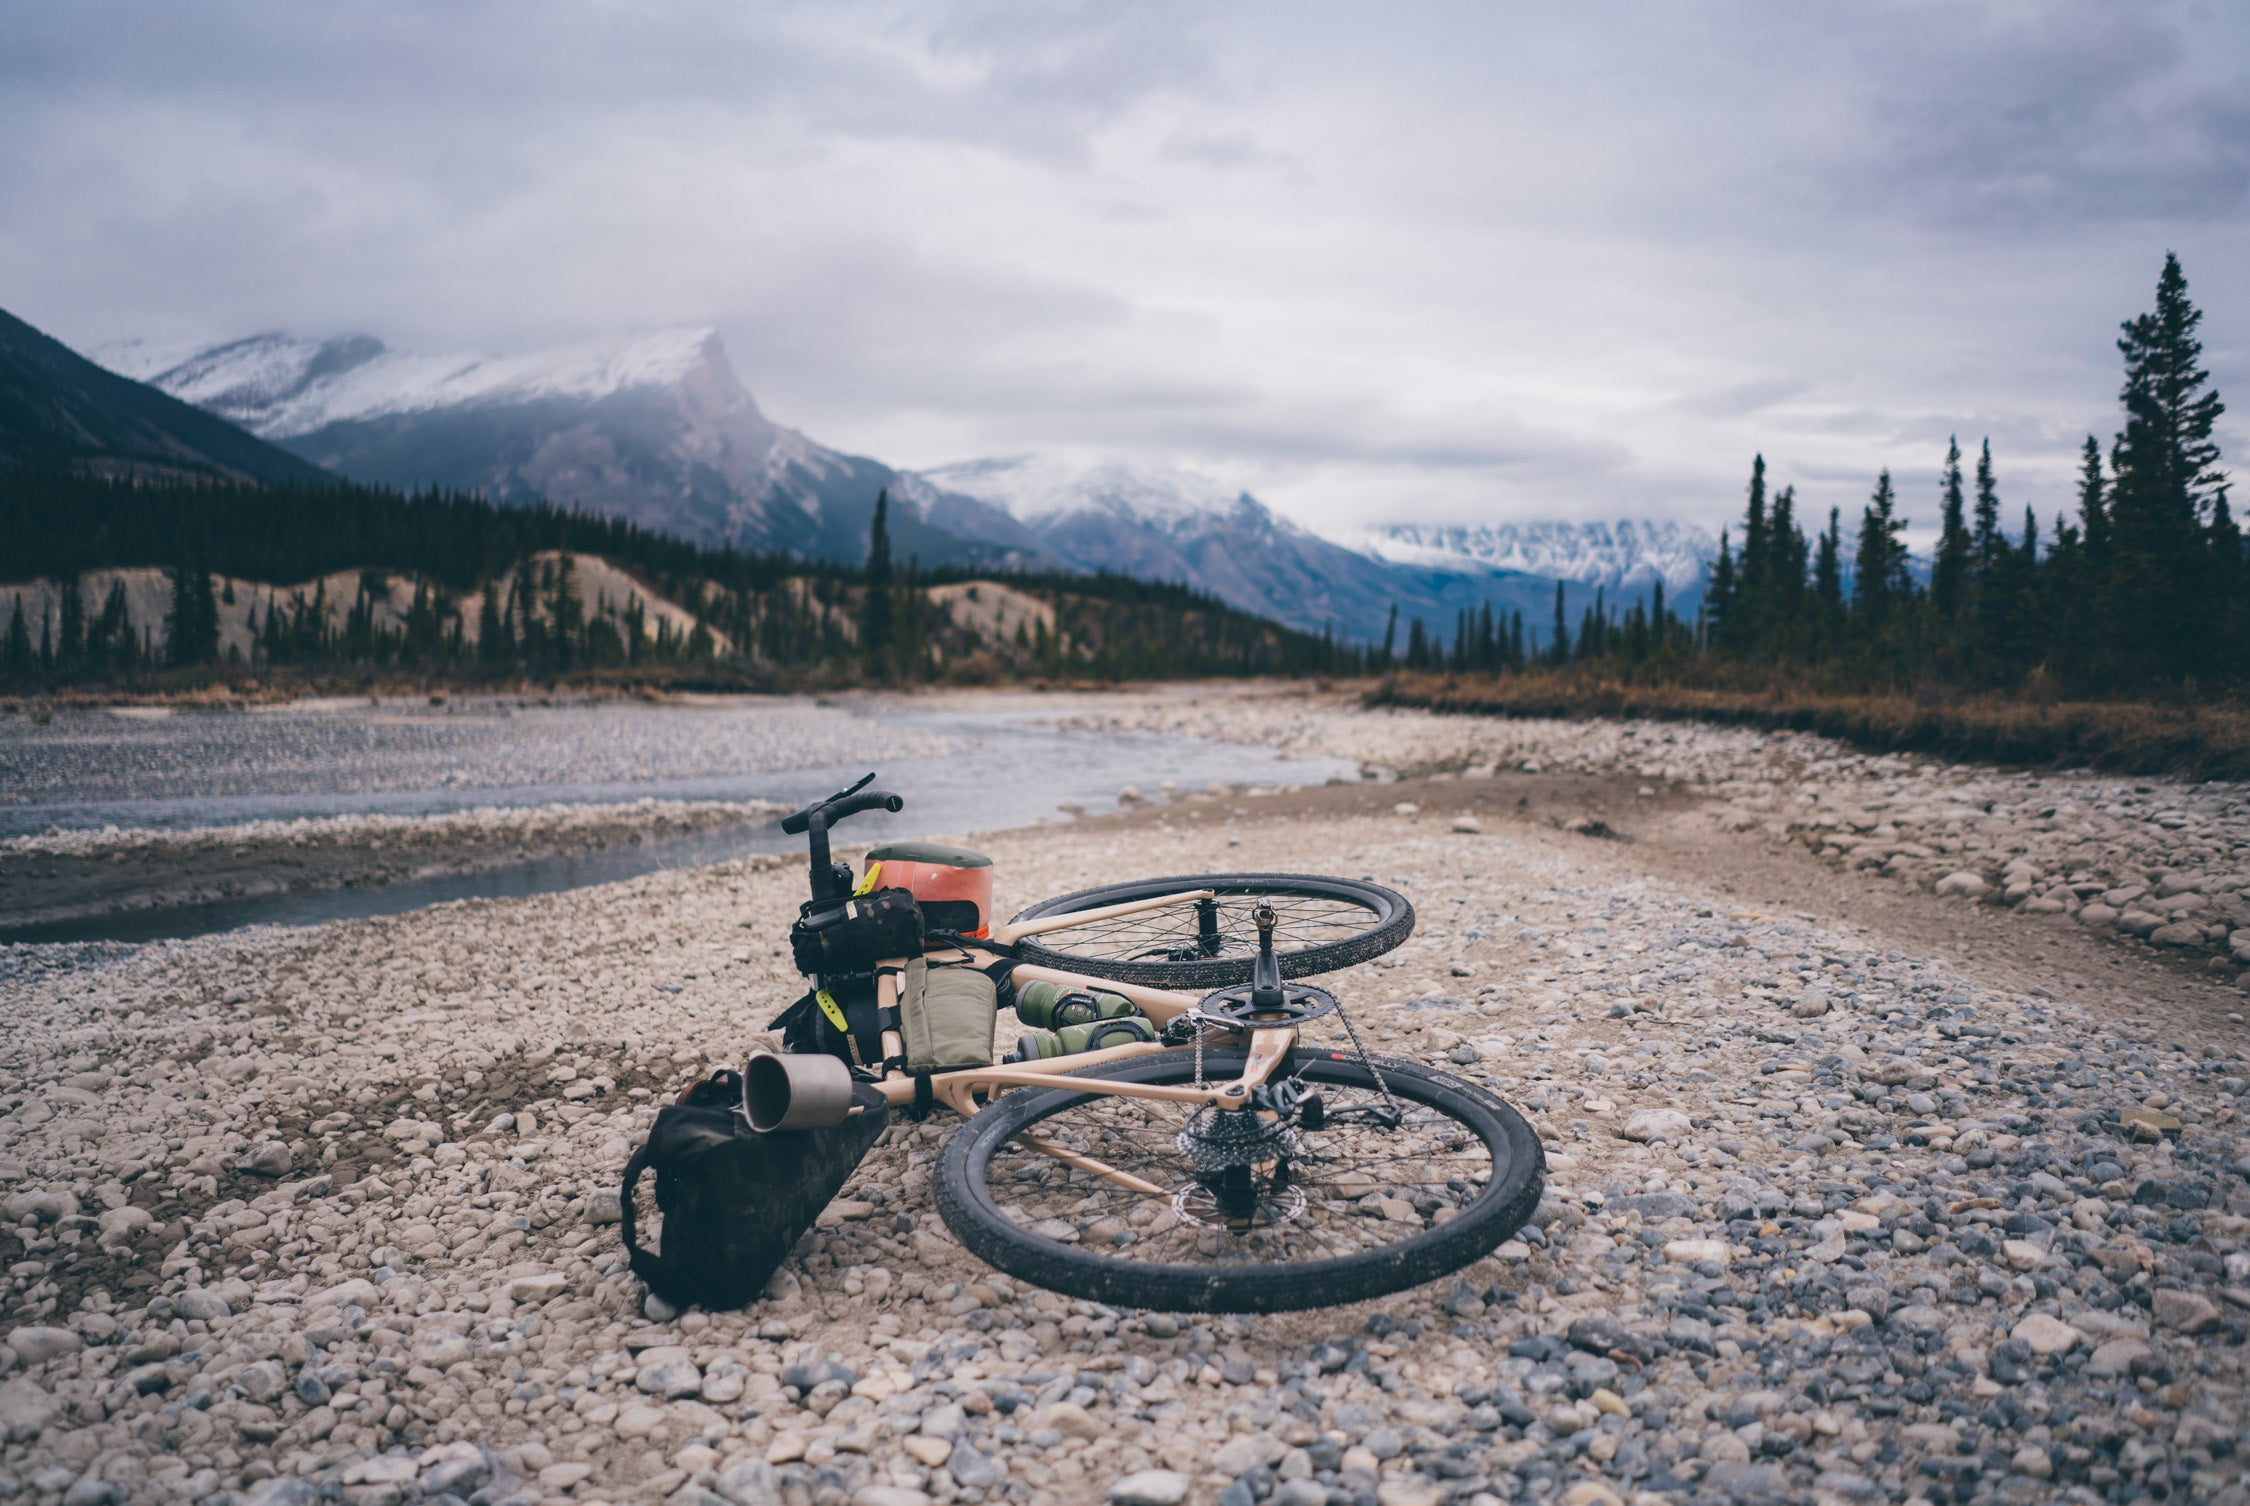 From the Field: Ben Johnson Heads to the Bikepack Canada Summit